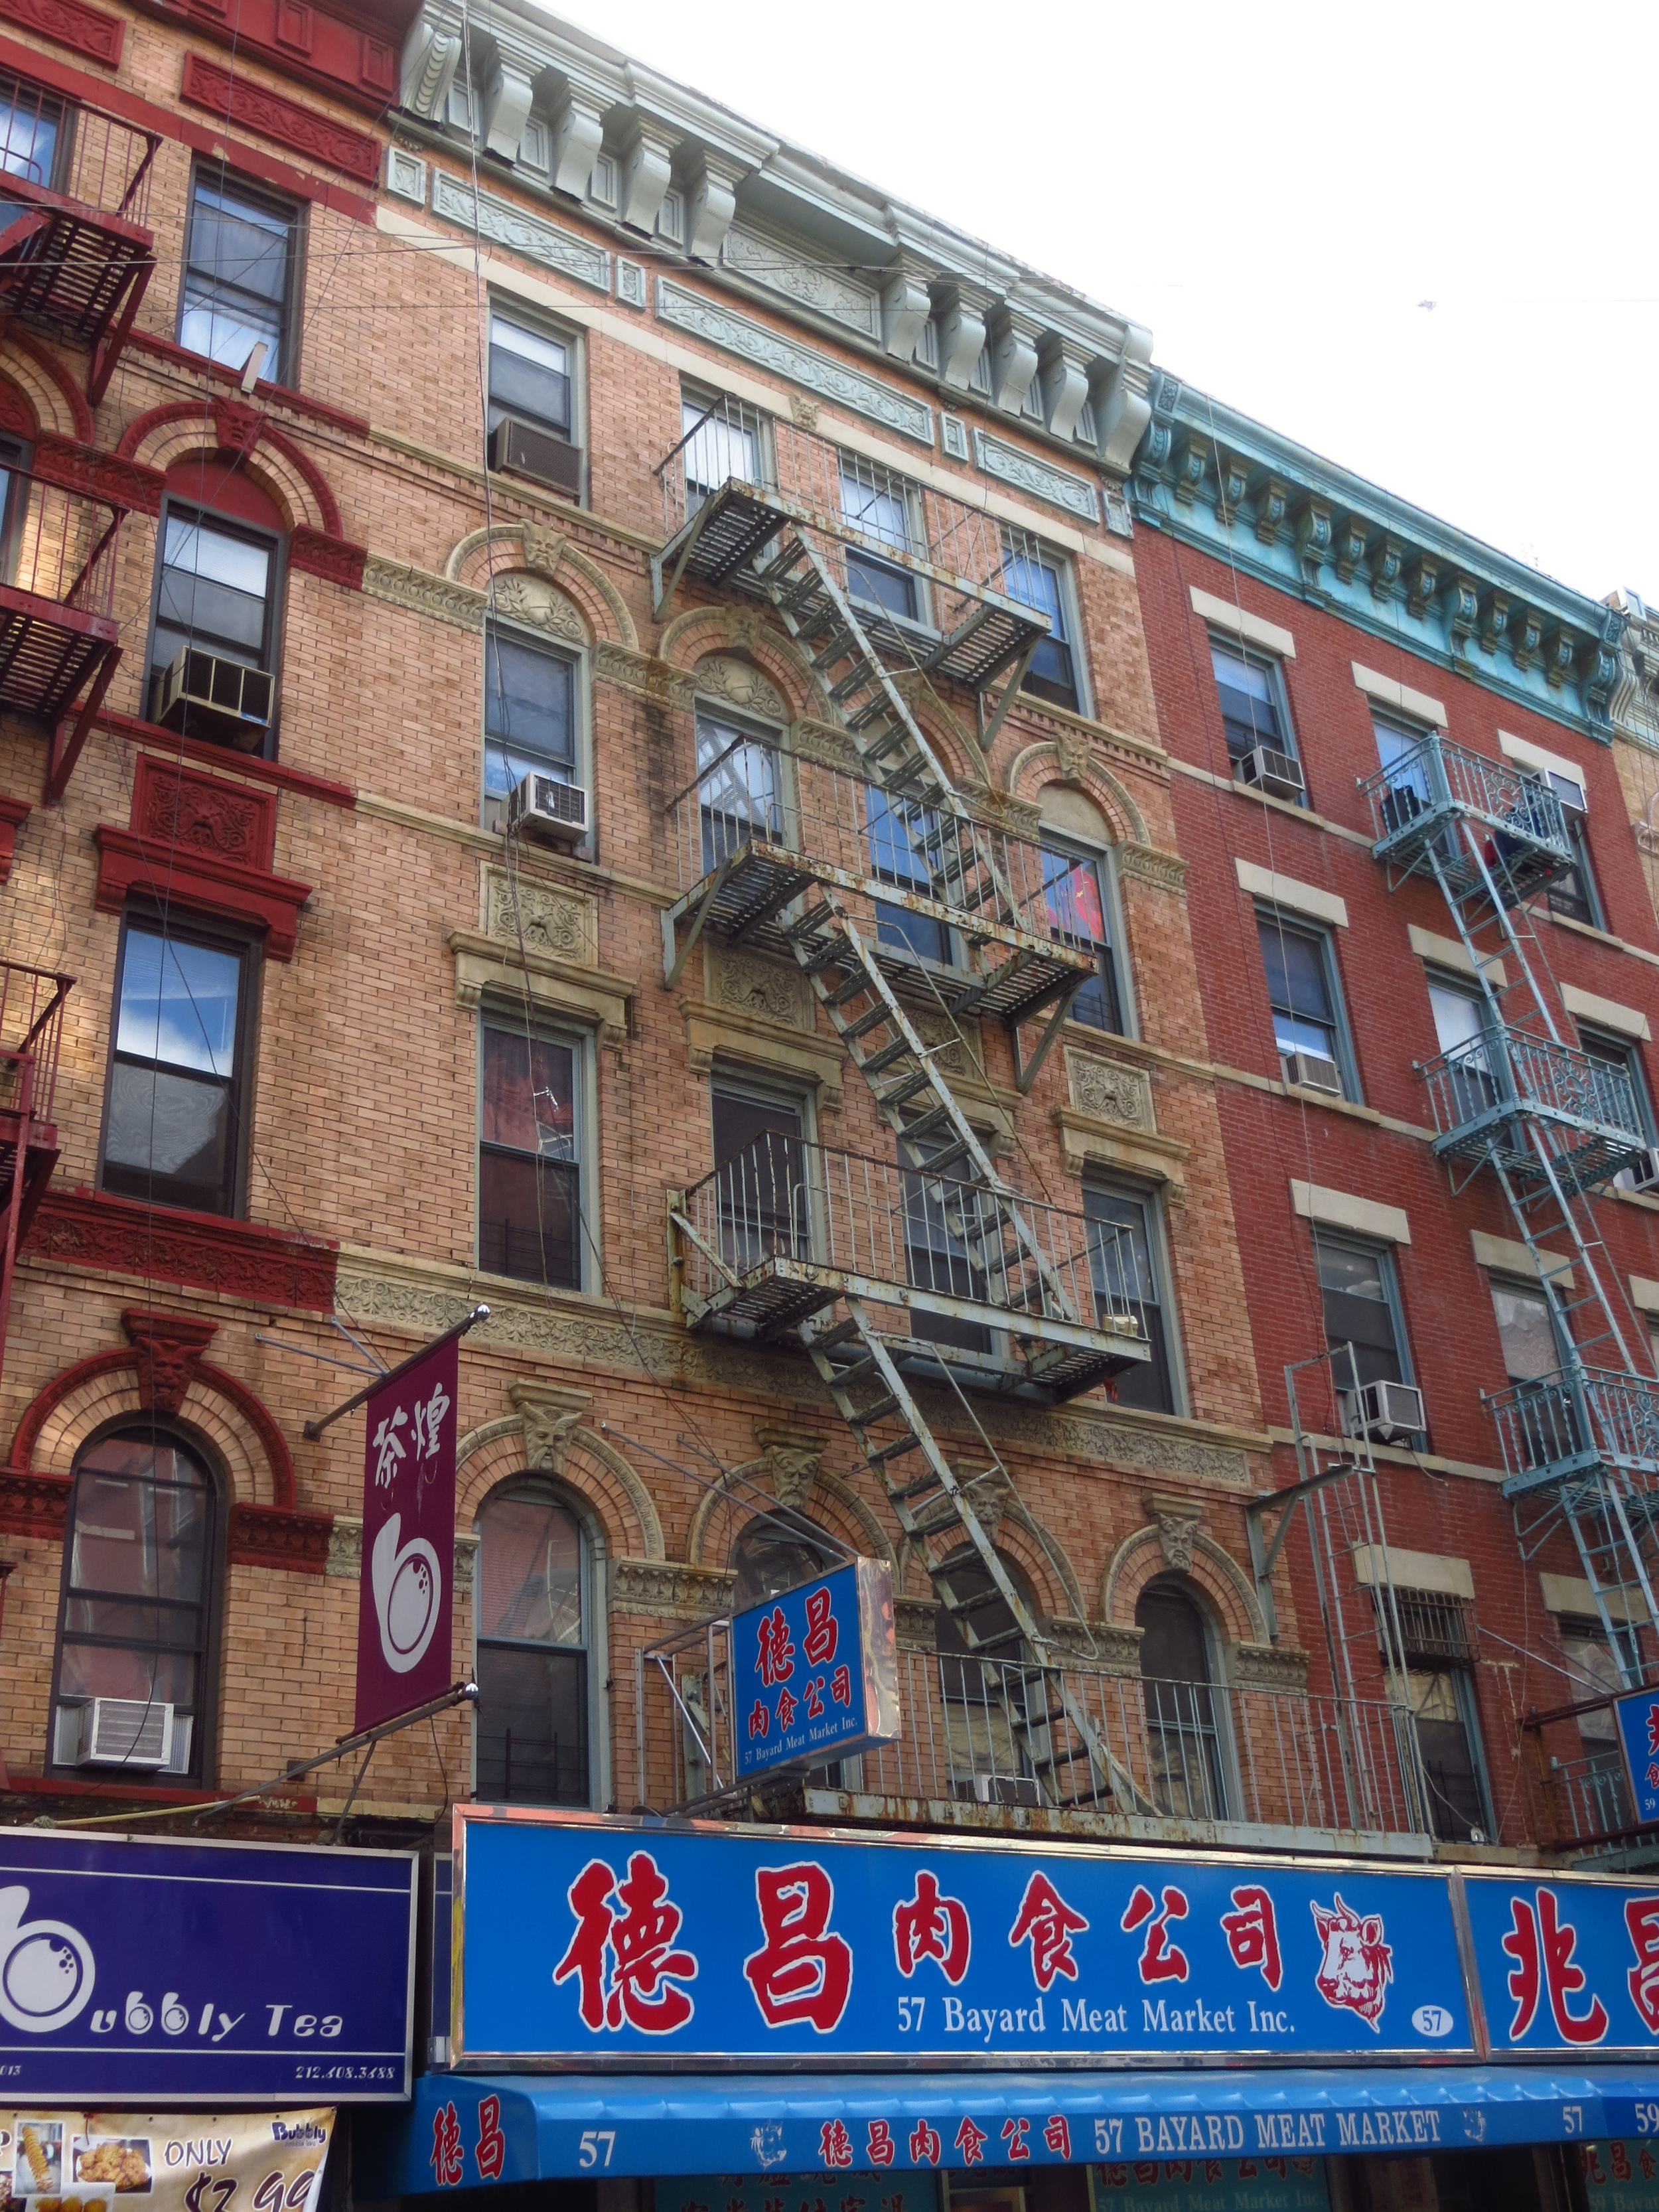 Old tenement building with cool details